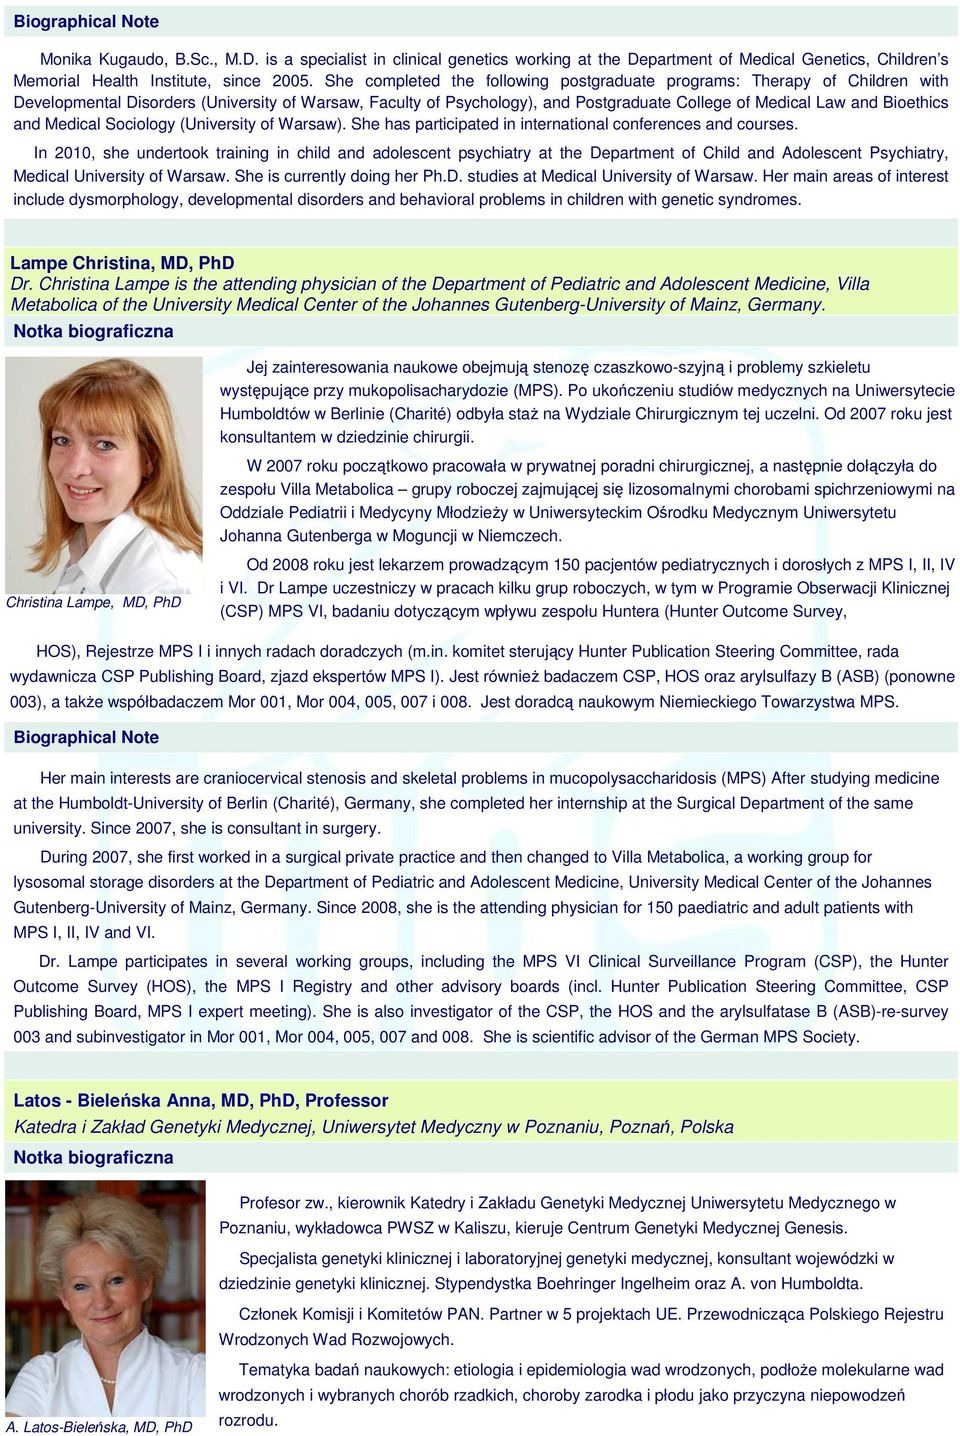 Bioethics and Medical Sociology (University of Warsaw). She has participated in international conferences and courses.